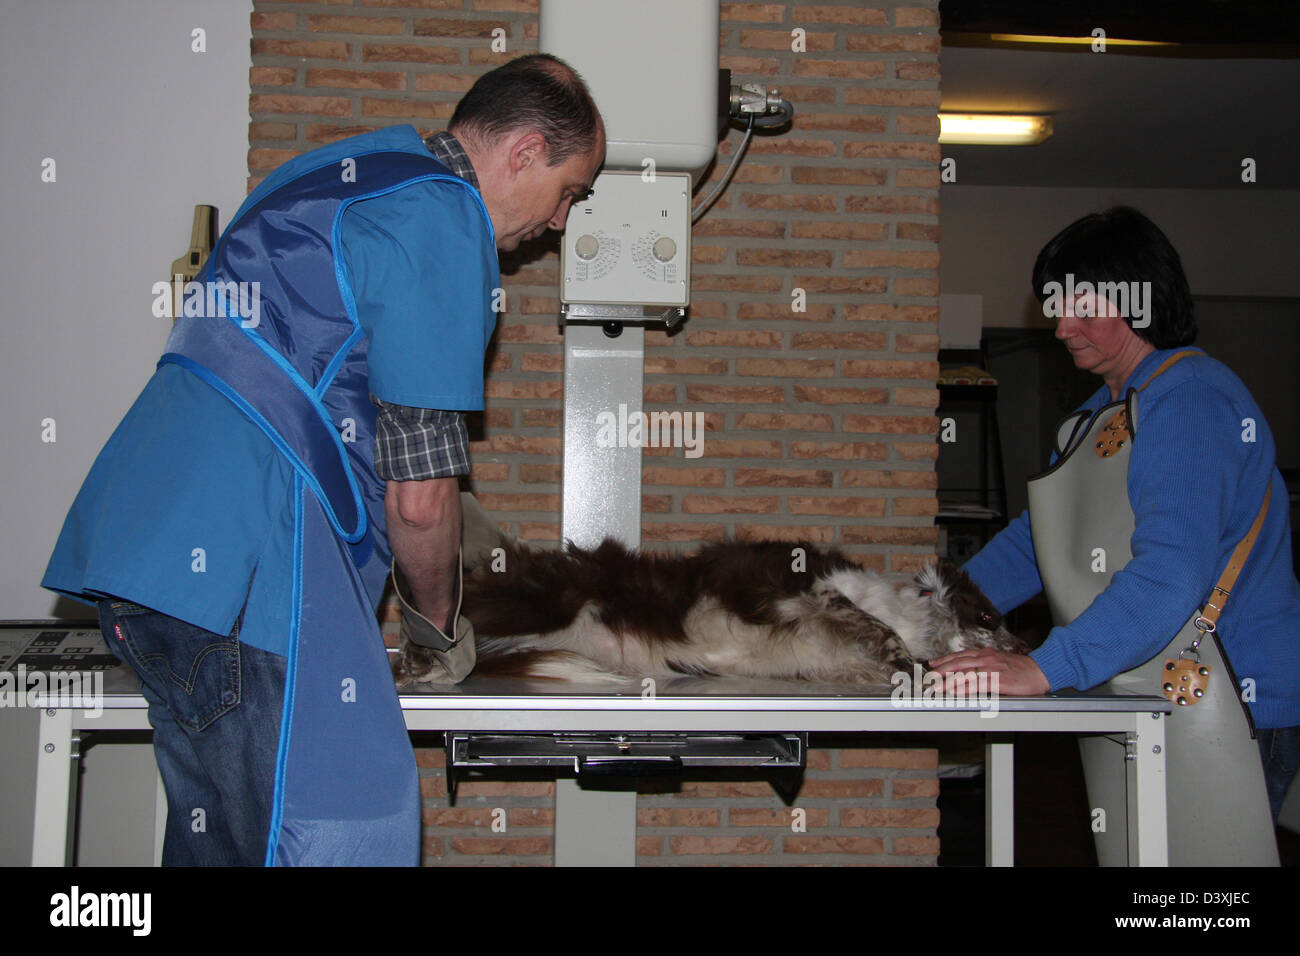 A Border Collie  dog receiving an x-ray by a veterinarian - Stock Image